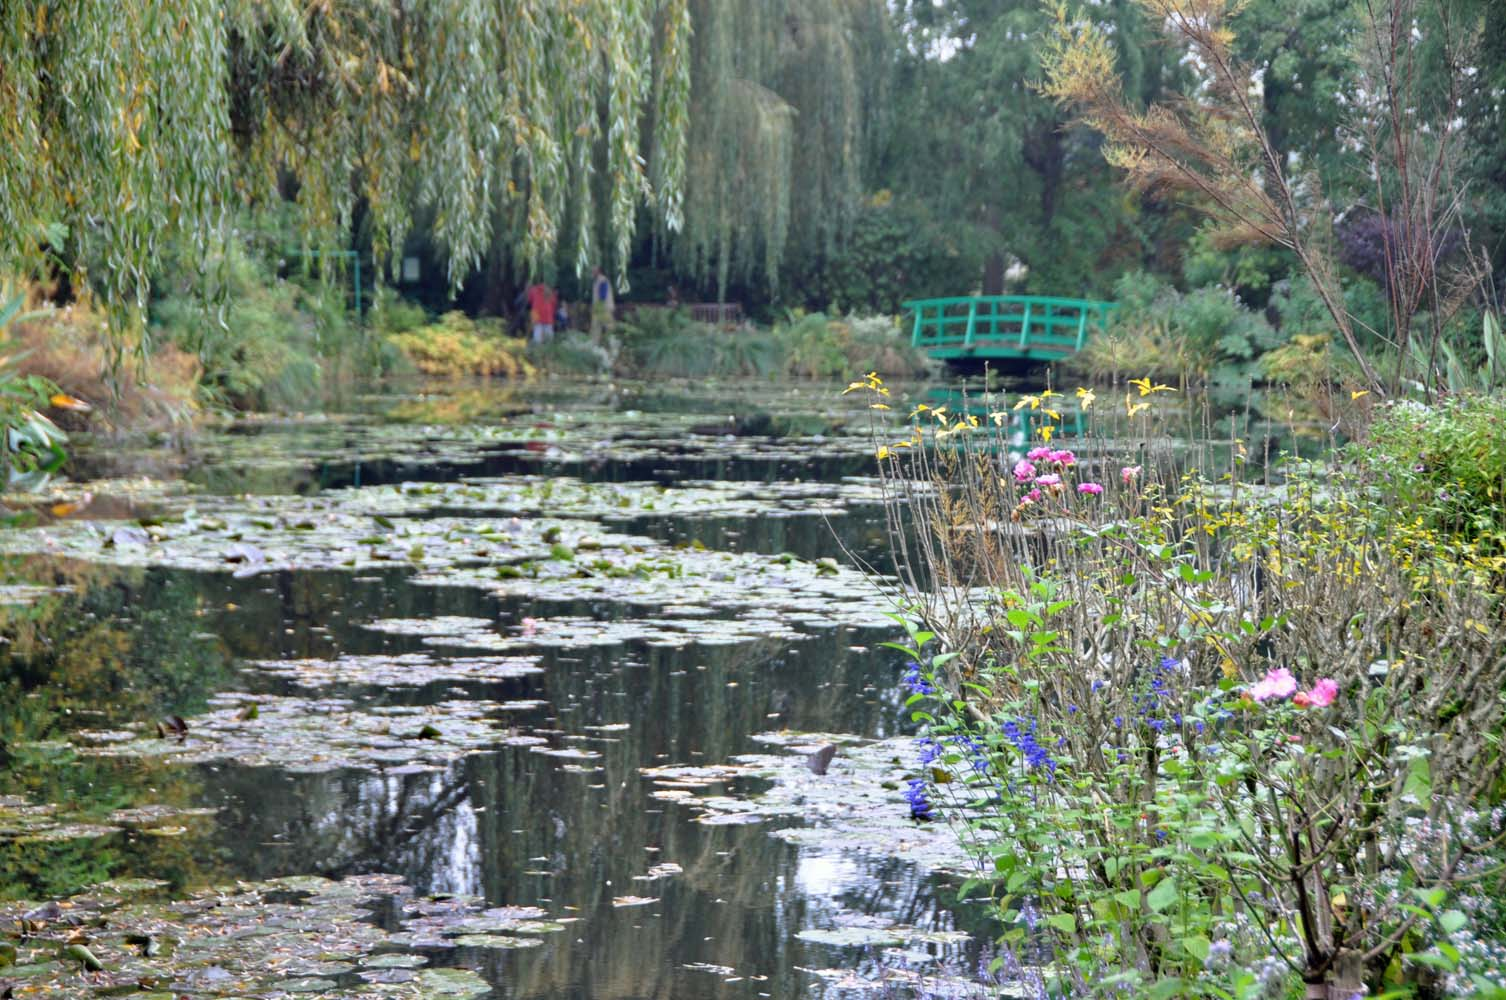 Le jardin de claude monet julie podstolski abstract - Livre le jardin de monet ...